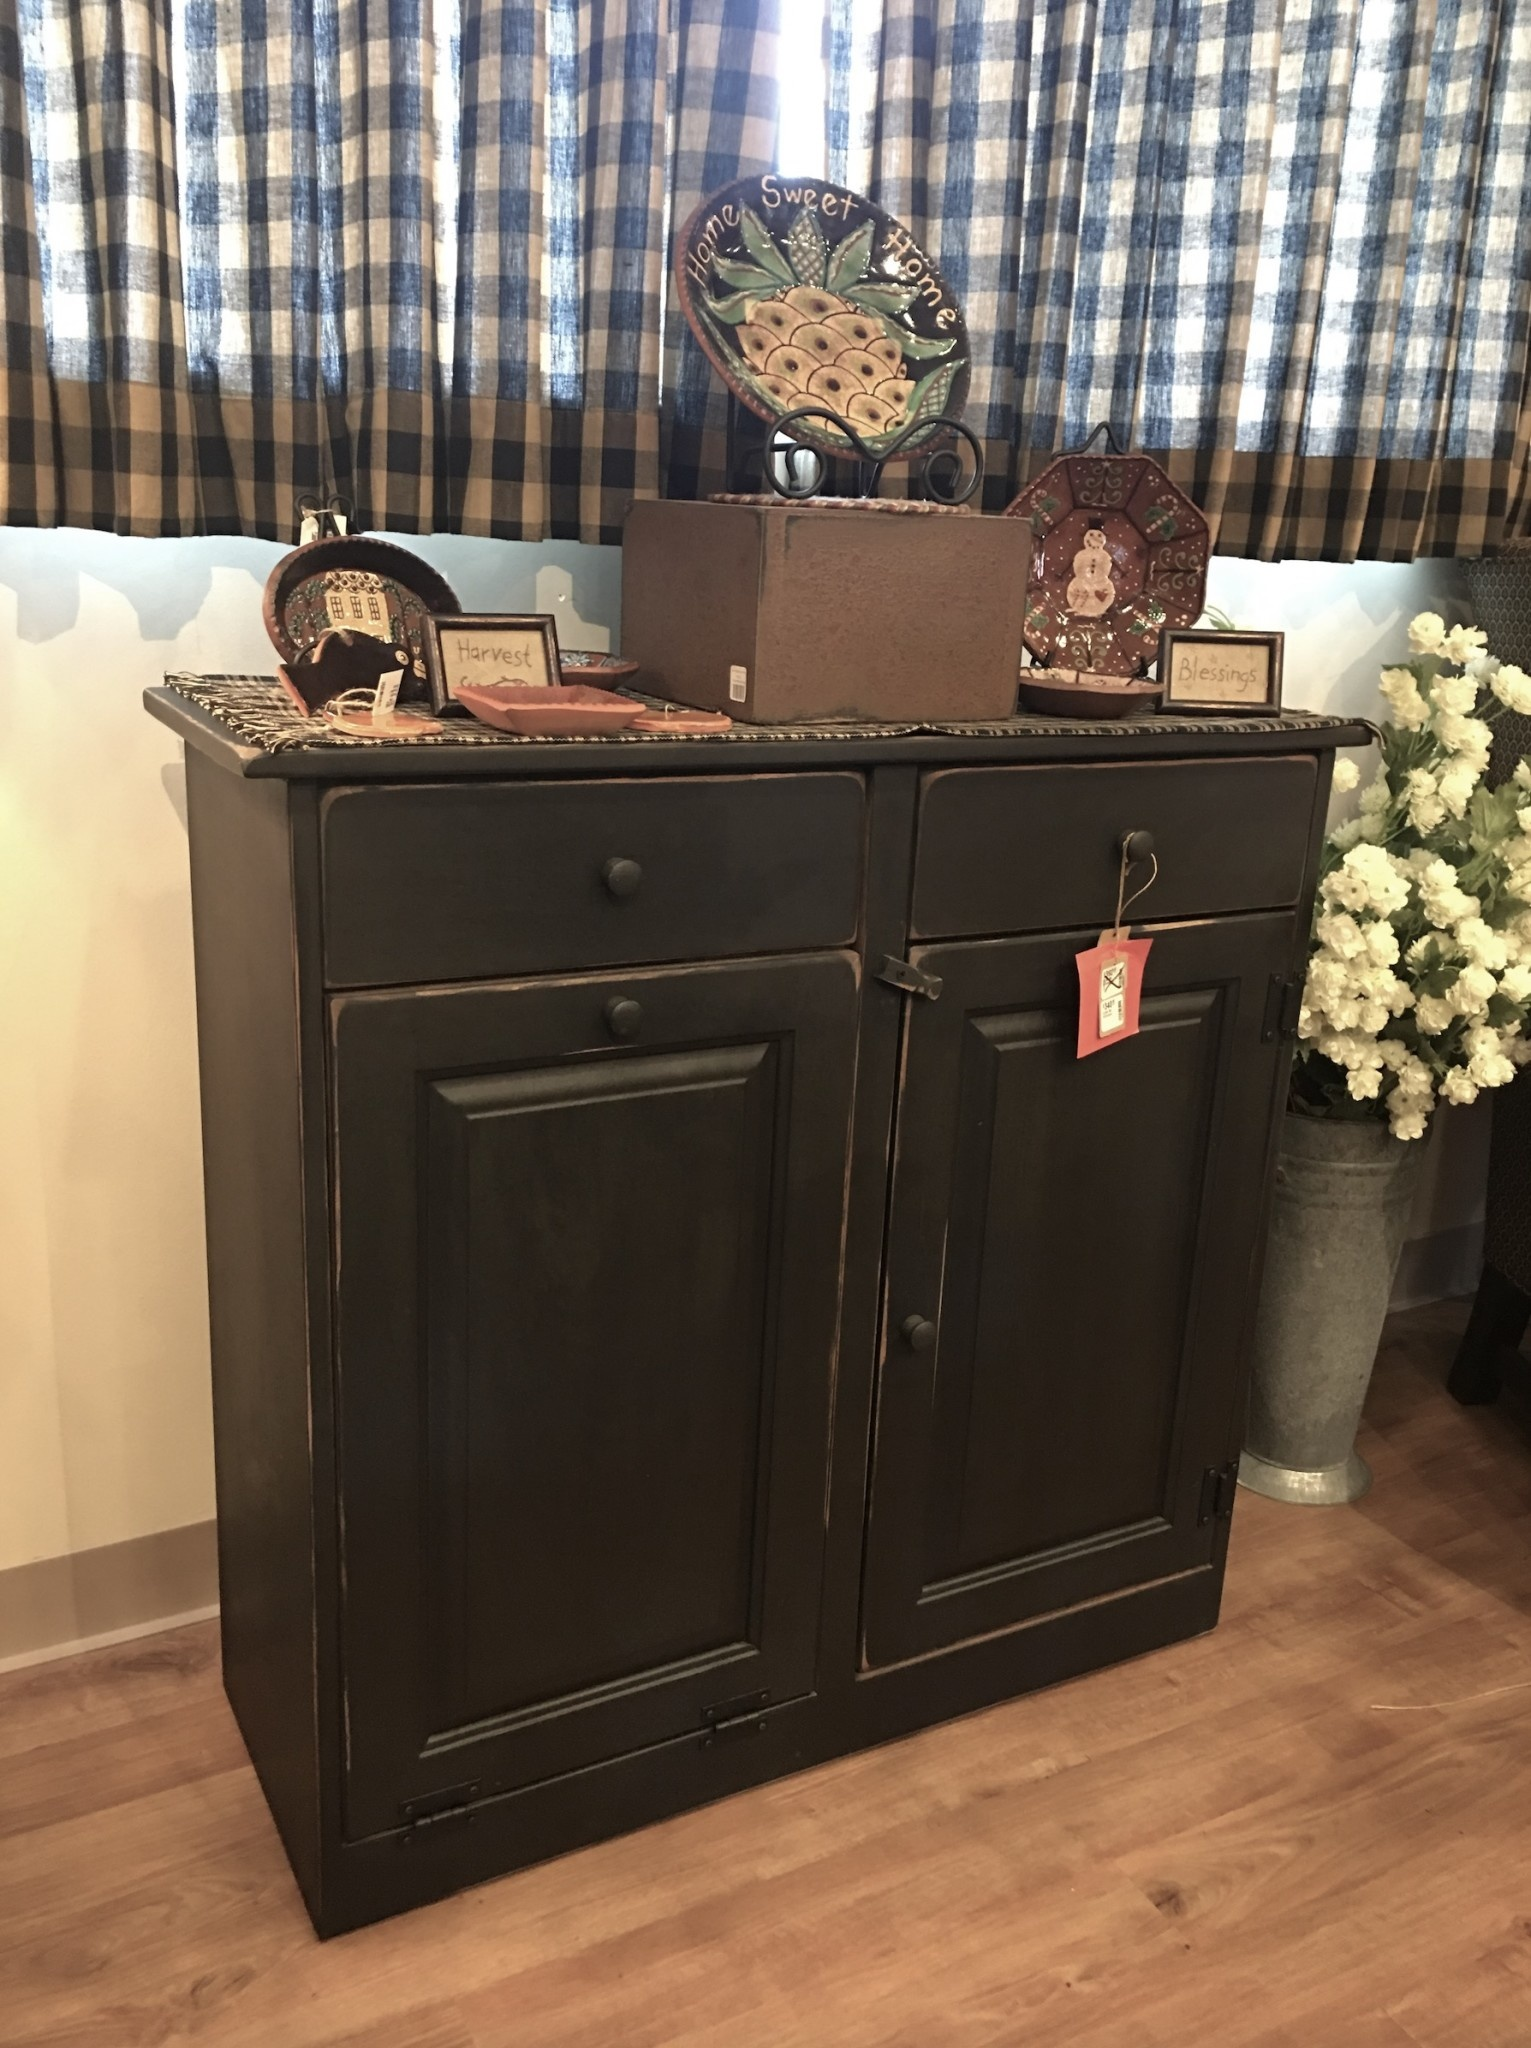 Miraculous Coffee Bar Cabinet Country Primitive Furniture Nanas Farmhouse Download Free Architecture Designs Pushbritishbridgeorg